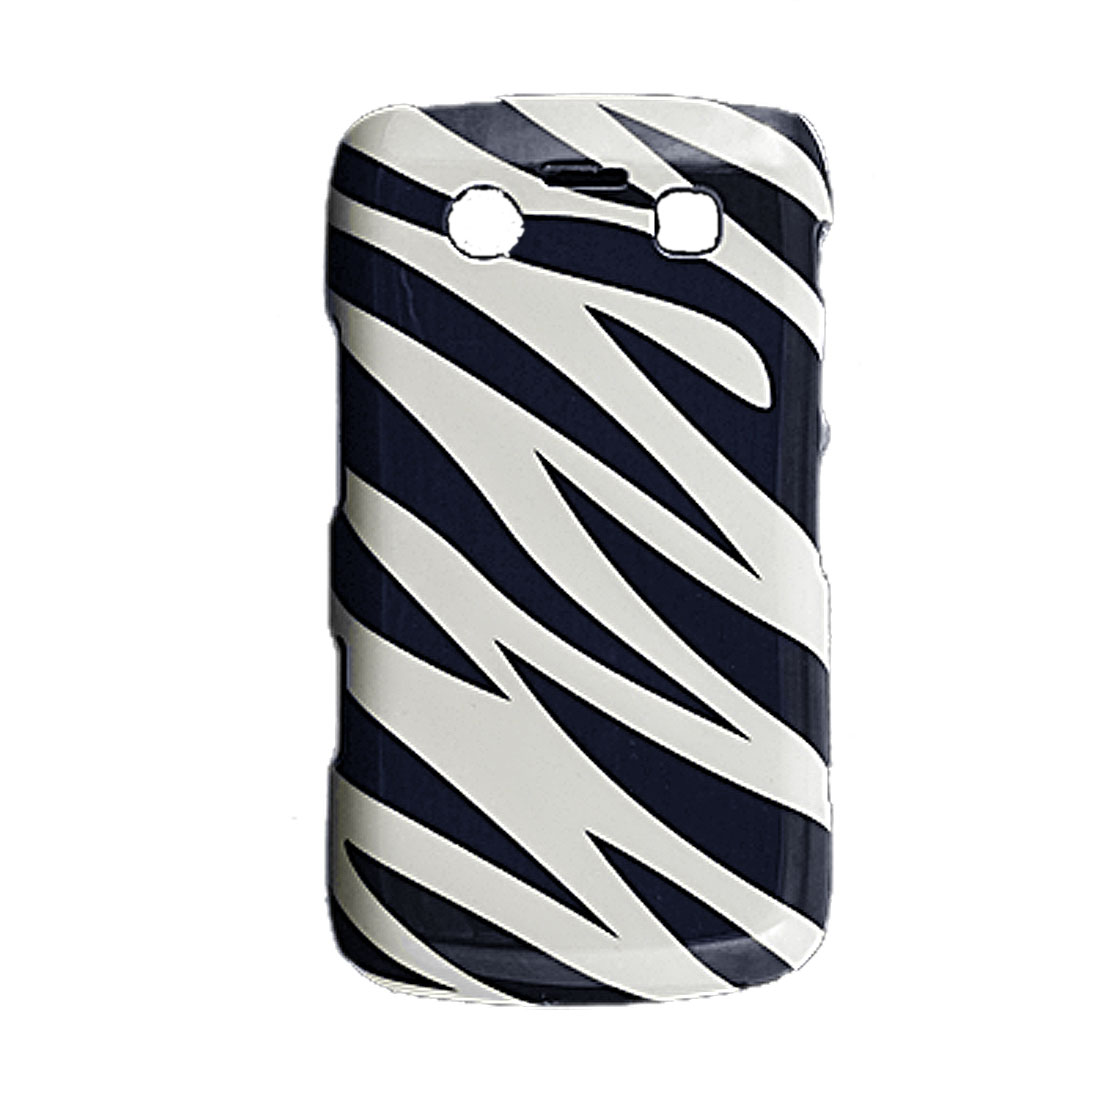 Zebra Pattern Hard Plastic Back Case Cover for Blackberry 9700 9020